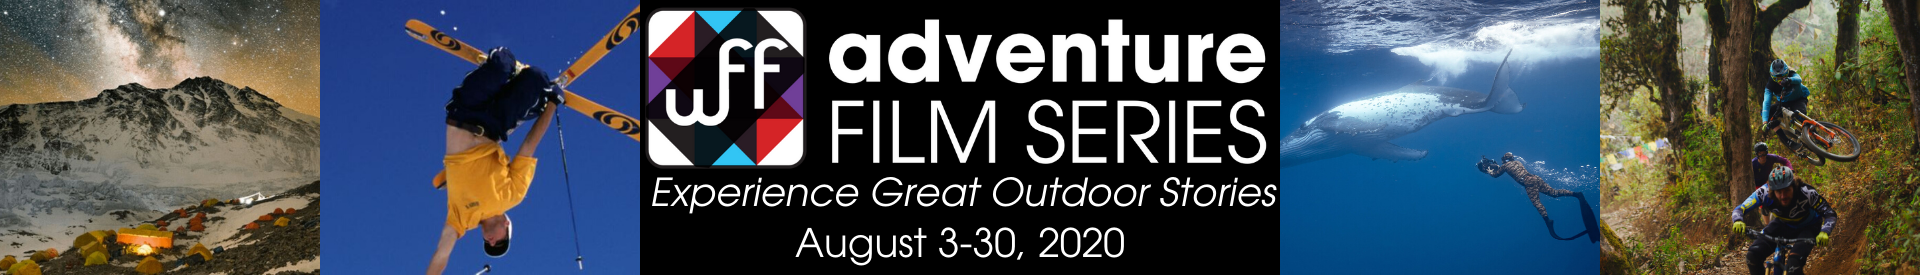 Whistler Adventure Film Series